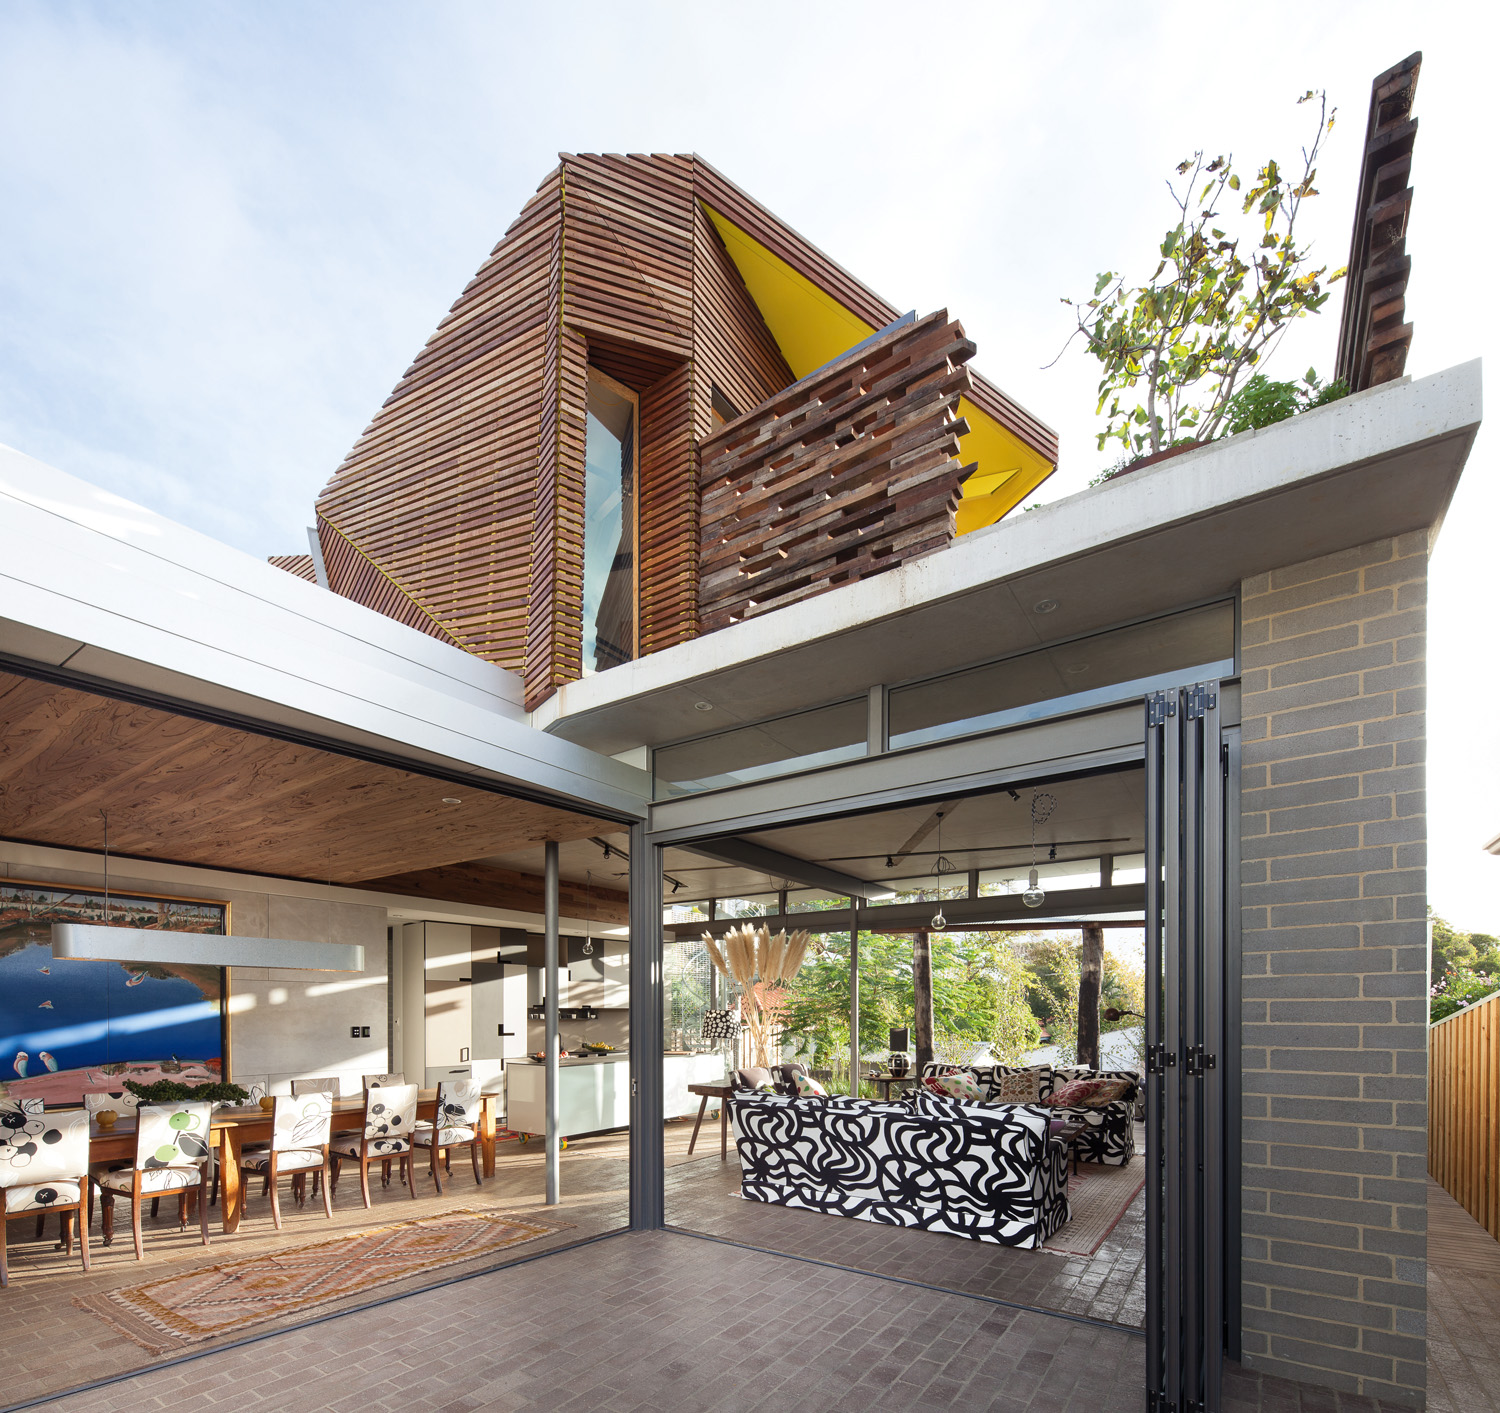 Grand Designs Australia Shipping Container House Episode House Decor - Madden home designs